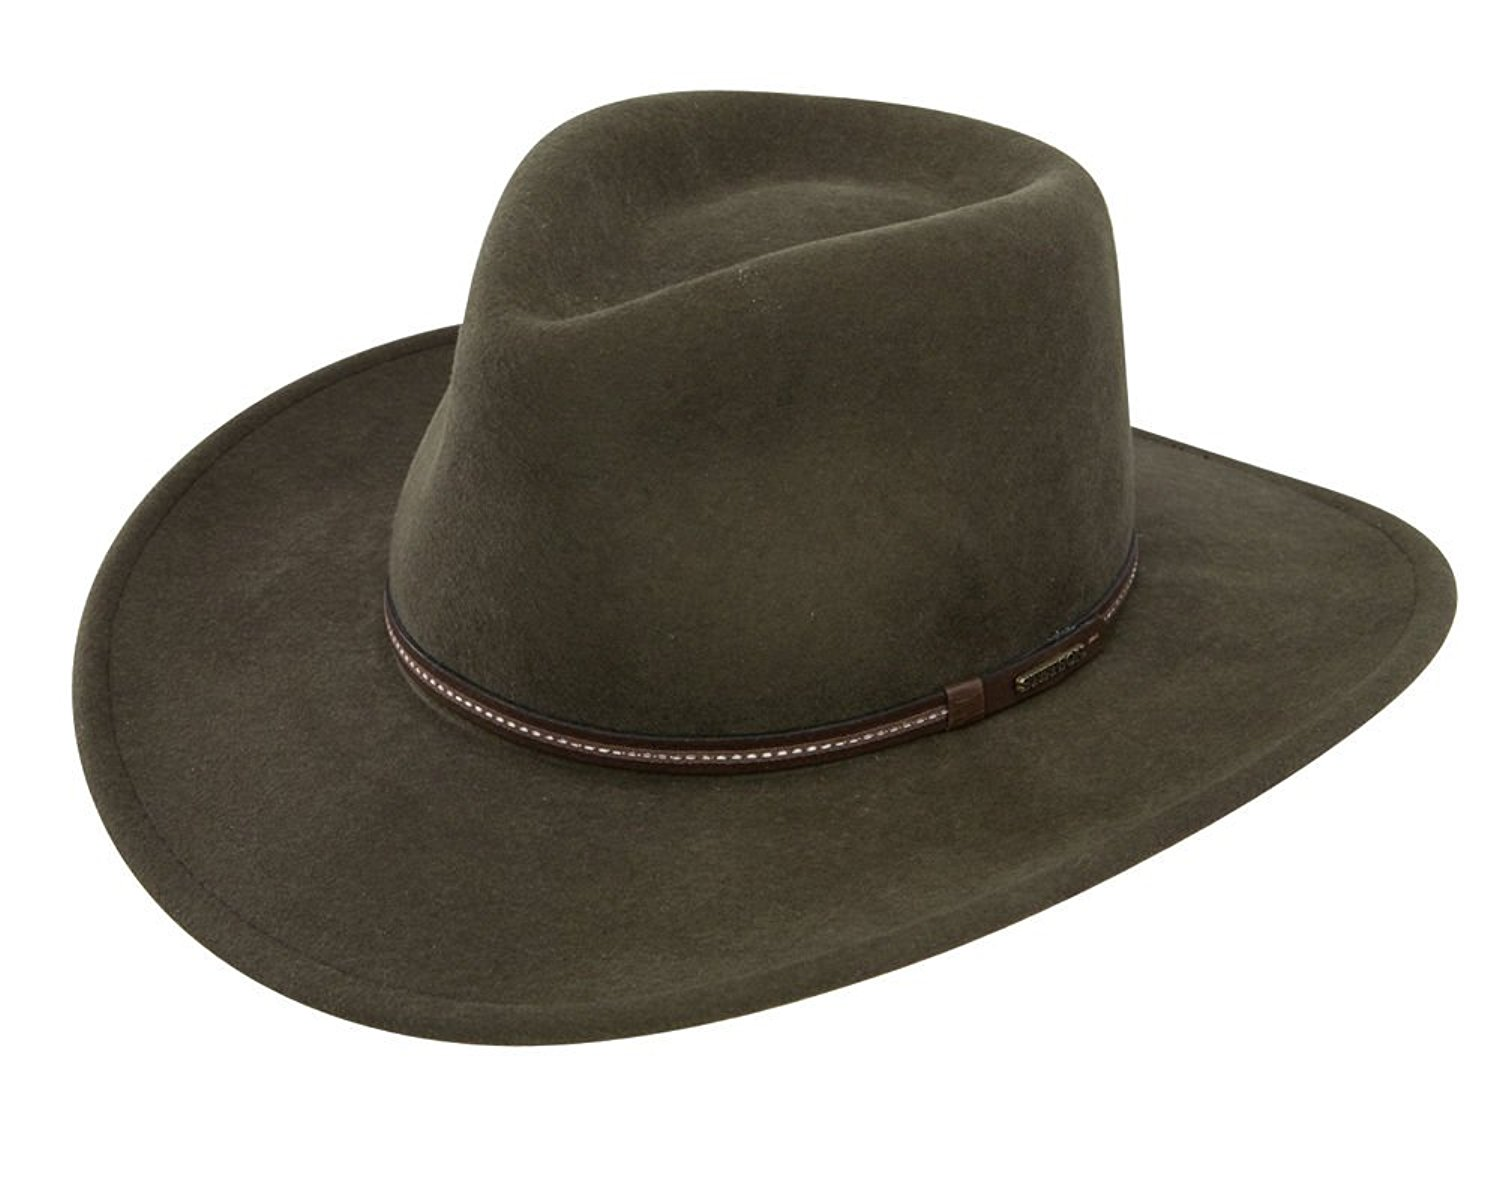 de7427686de Get Quotations · Stetson Men s Gallatin Sage Green Crushable Wool Hat -  Swgltn-813242 Sage